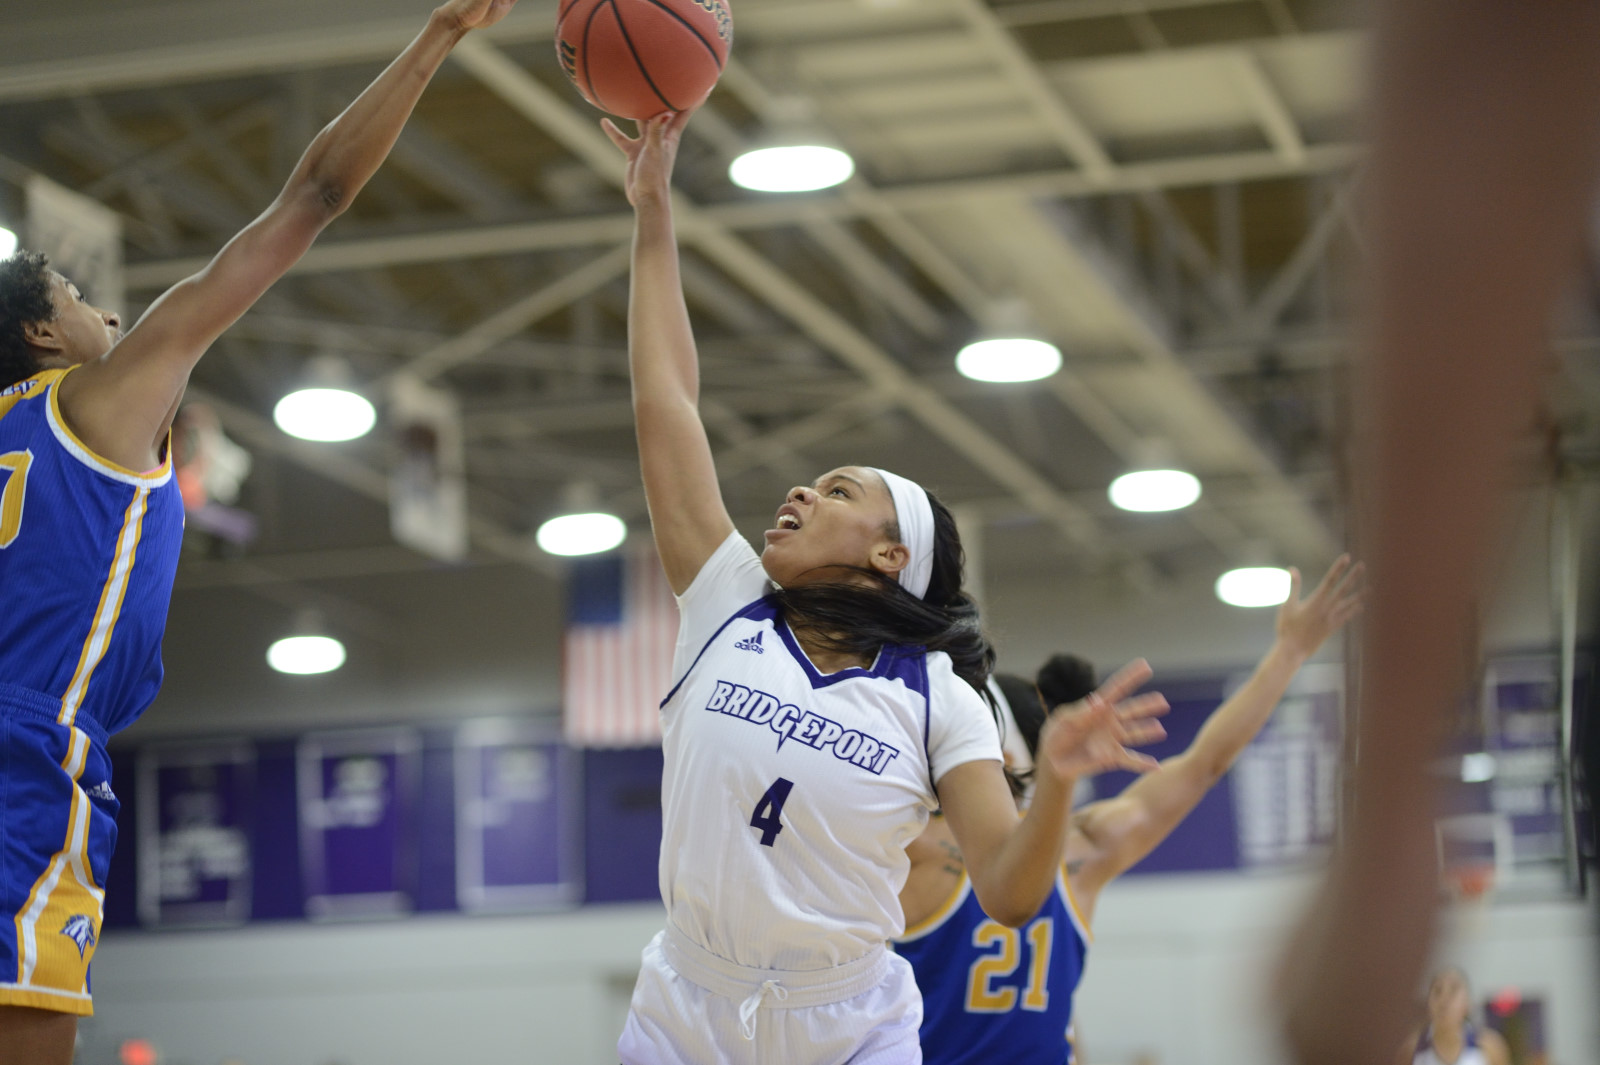 Women's Basketball Picks Up Third Straight Win With 70-52 Triumph Over Queens (N.Y.) College